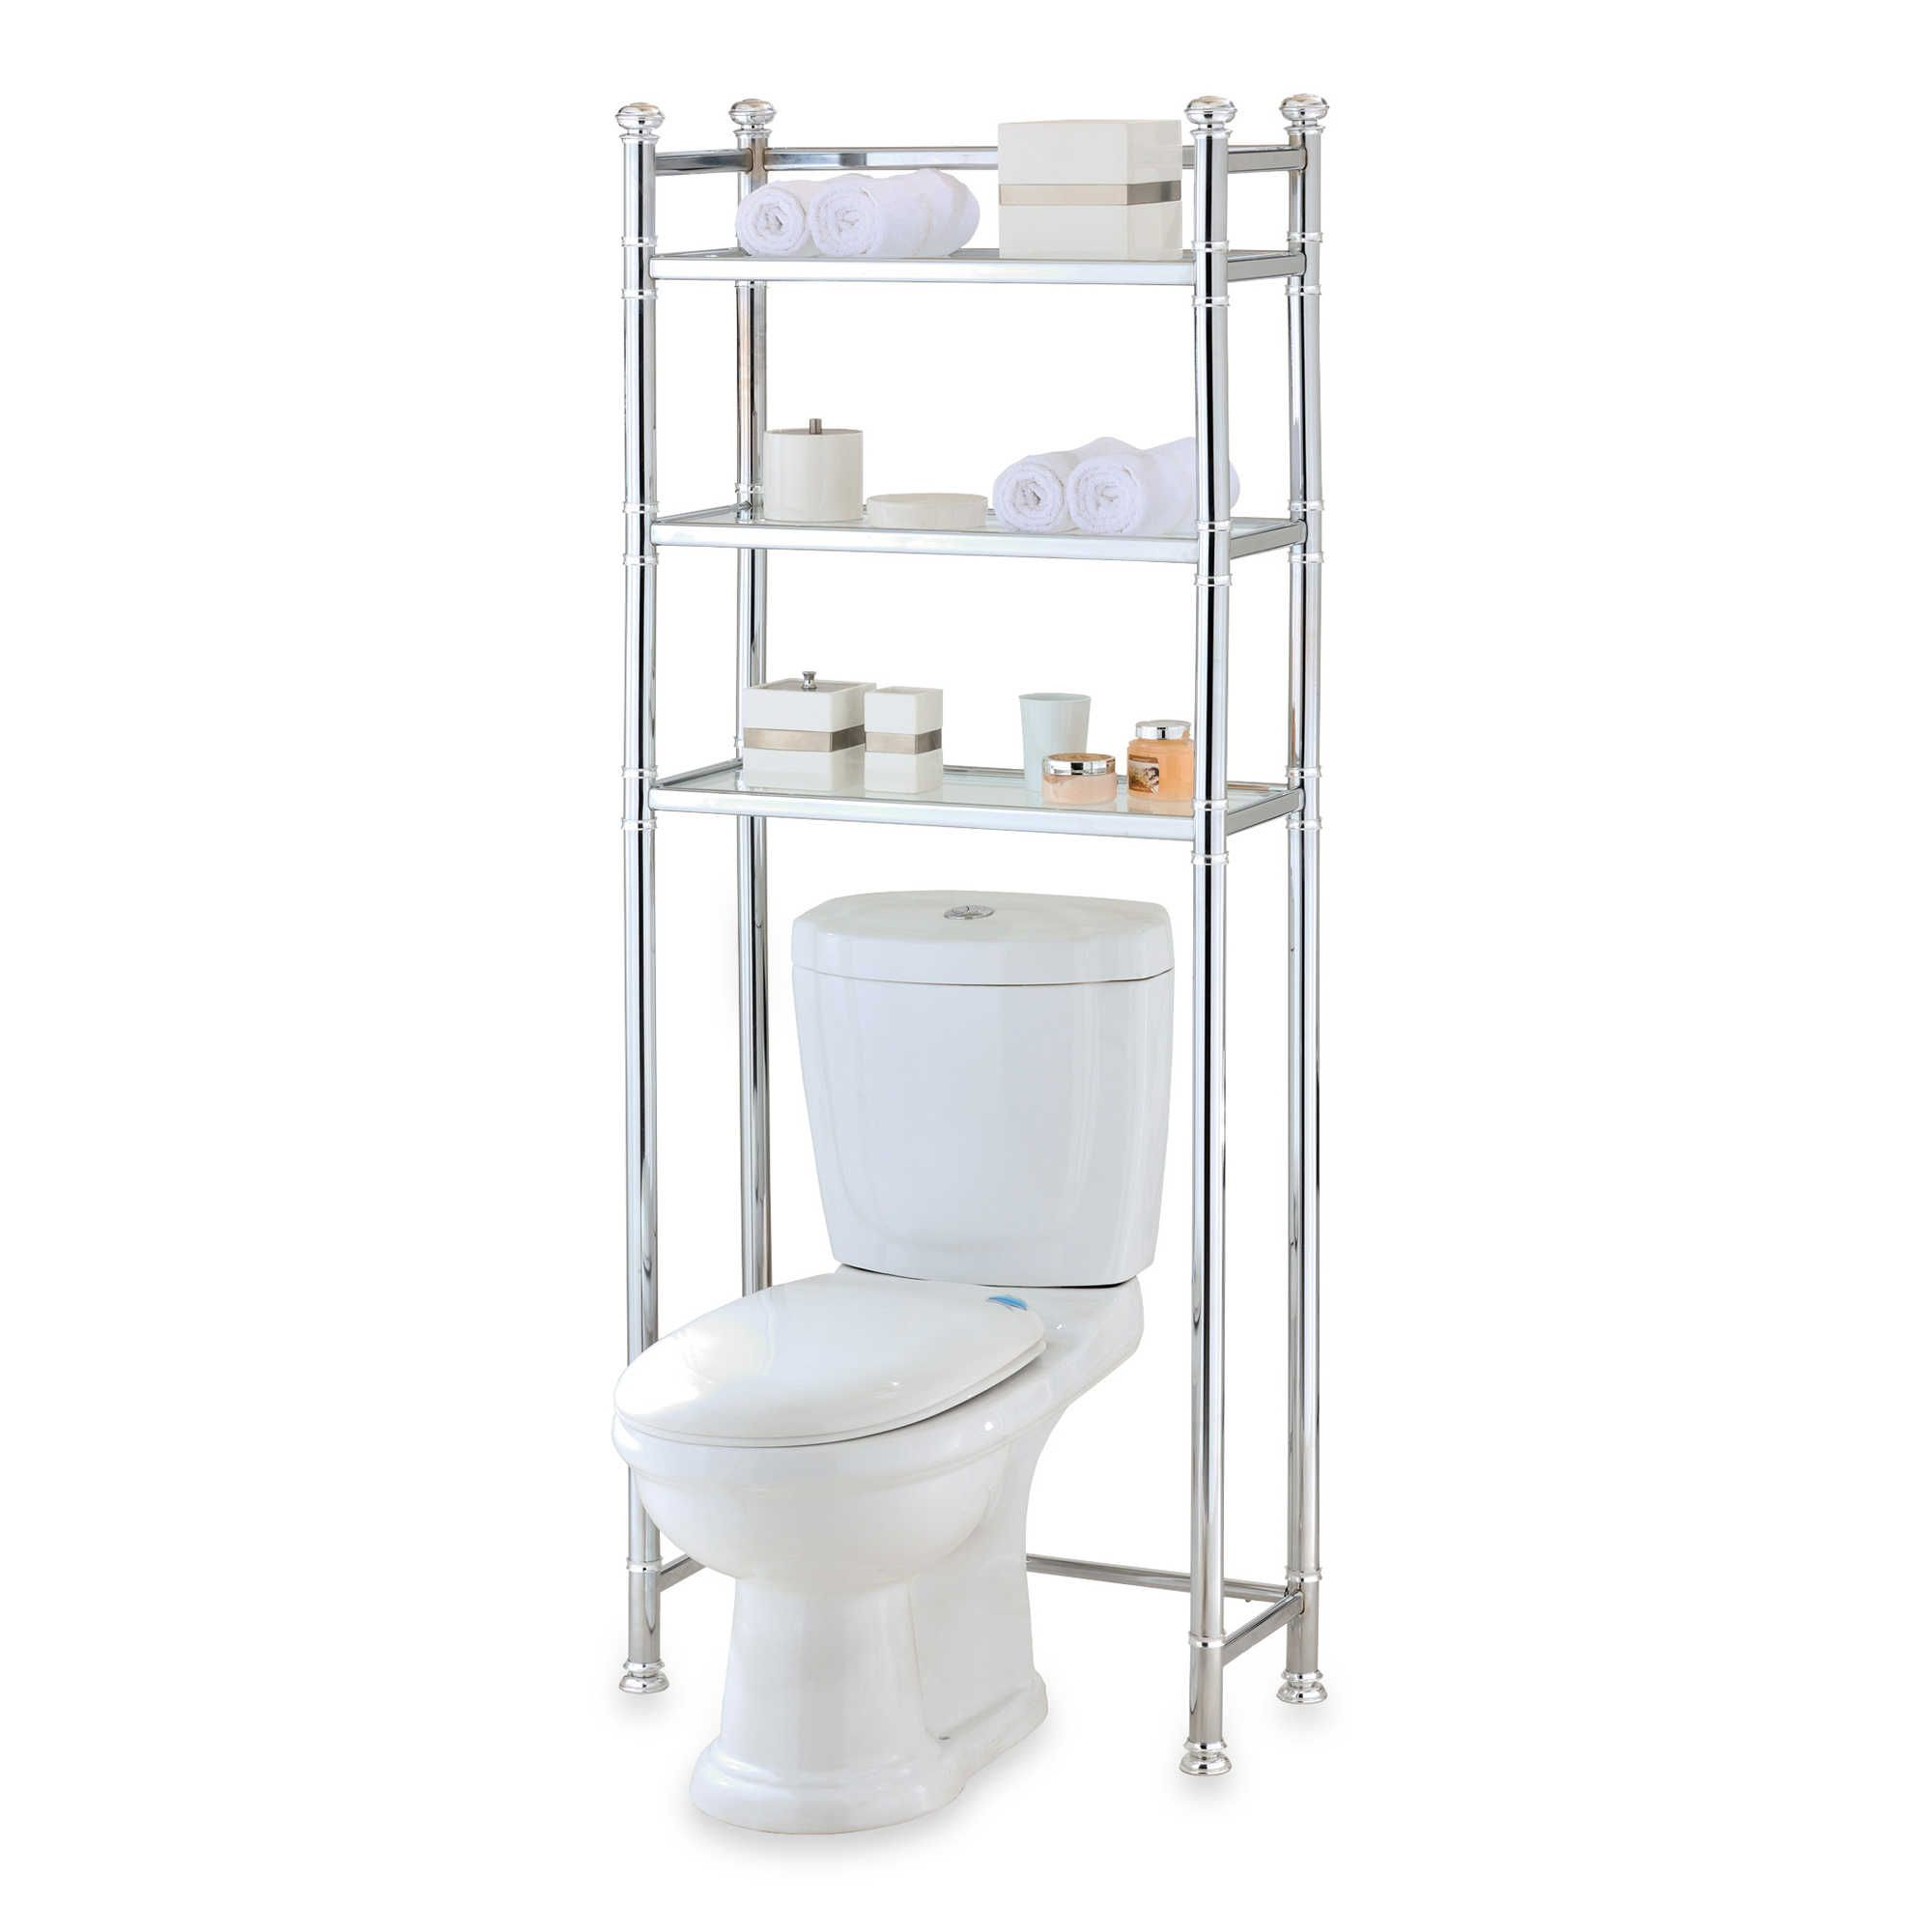 space unique storage cabinet target etagere cabinets gh ikea prissy bathroom tank lowes the toilet saver admirable medi spacesaver walmart over medicine